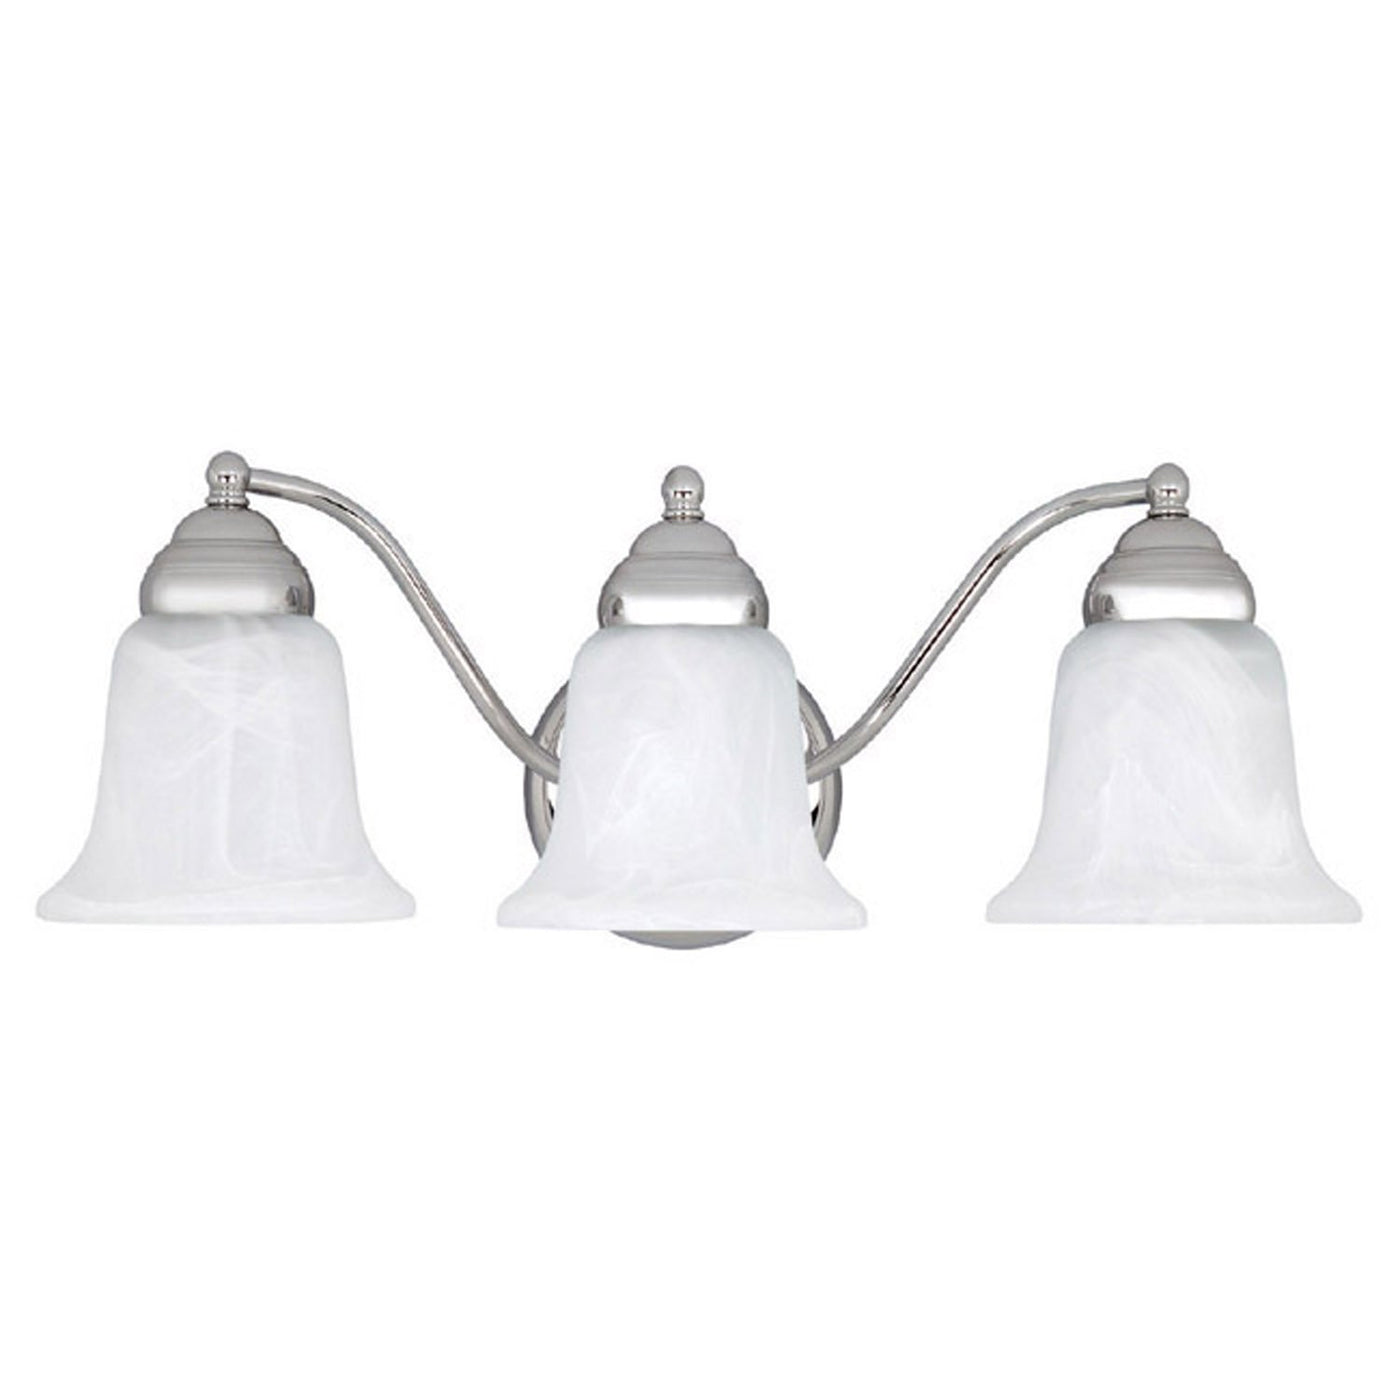 3 Light Vanity Fixture with Chrome Finish and Faux White Alabaster ...